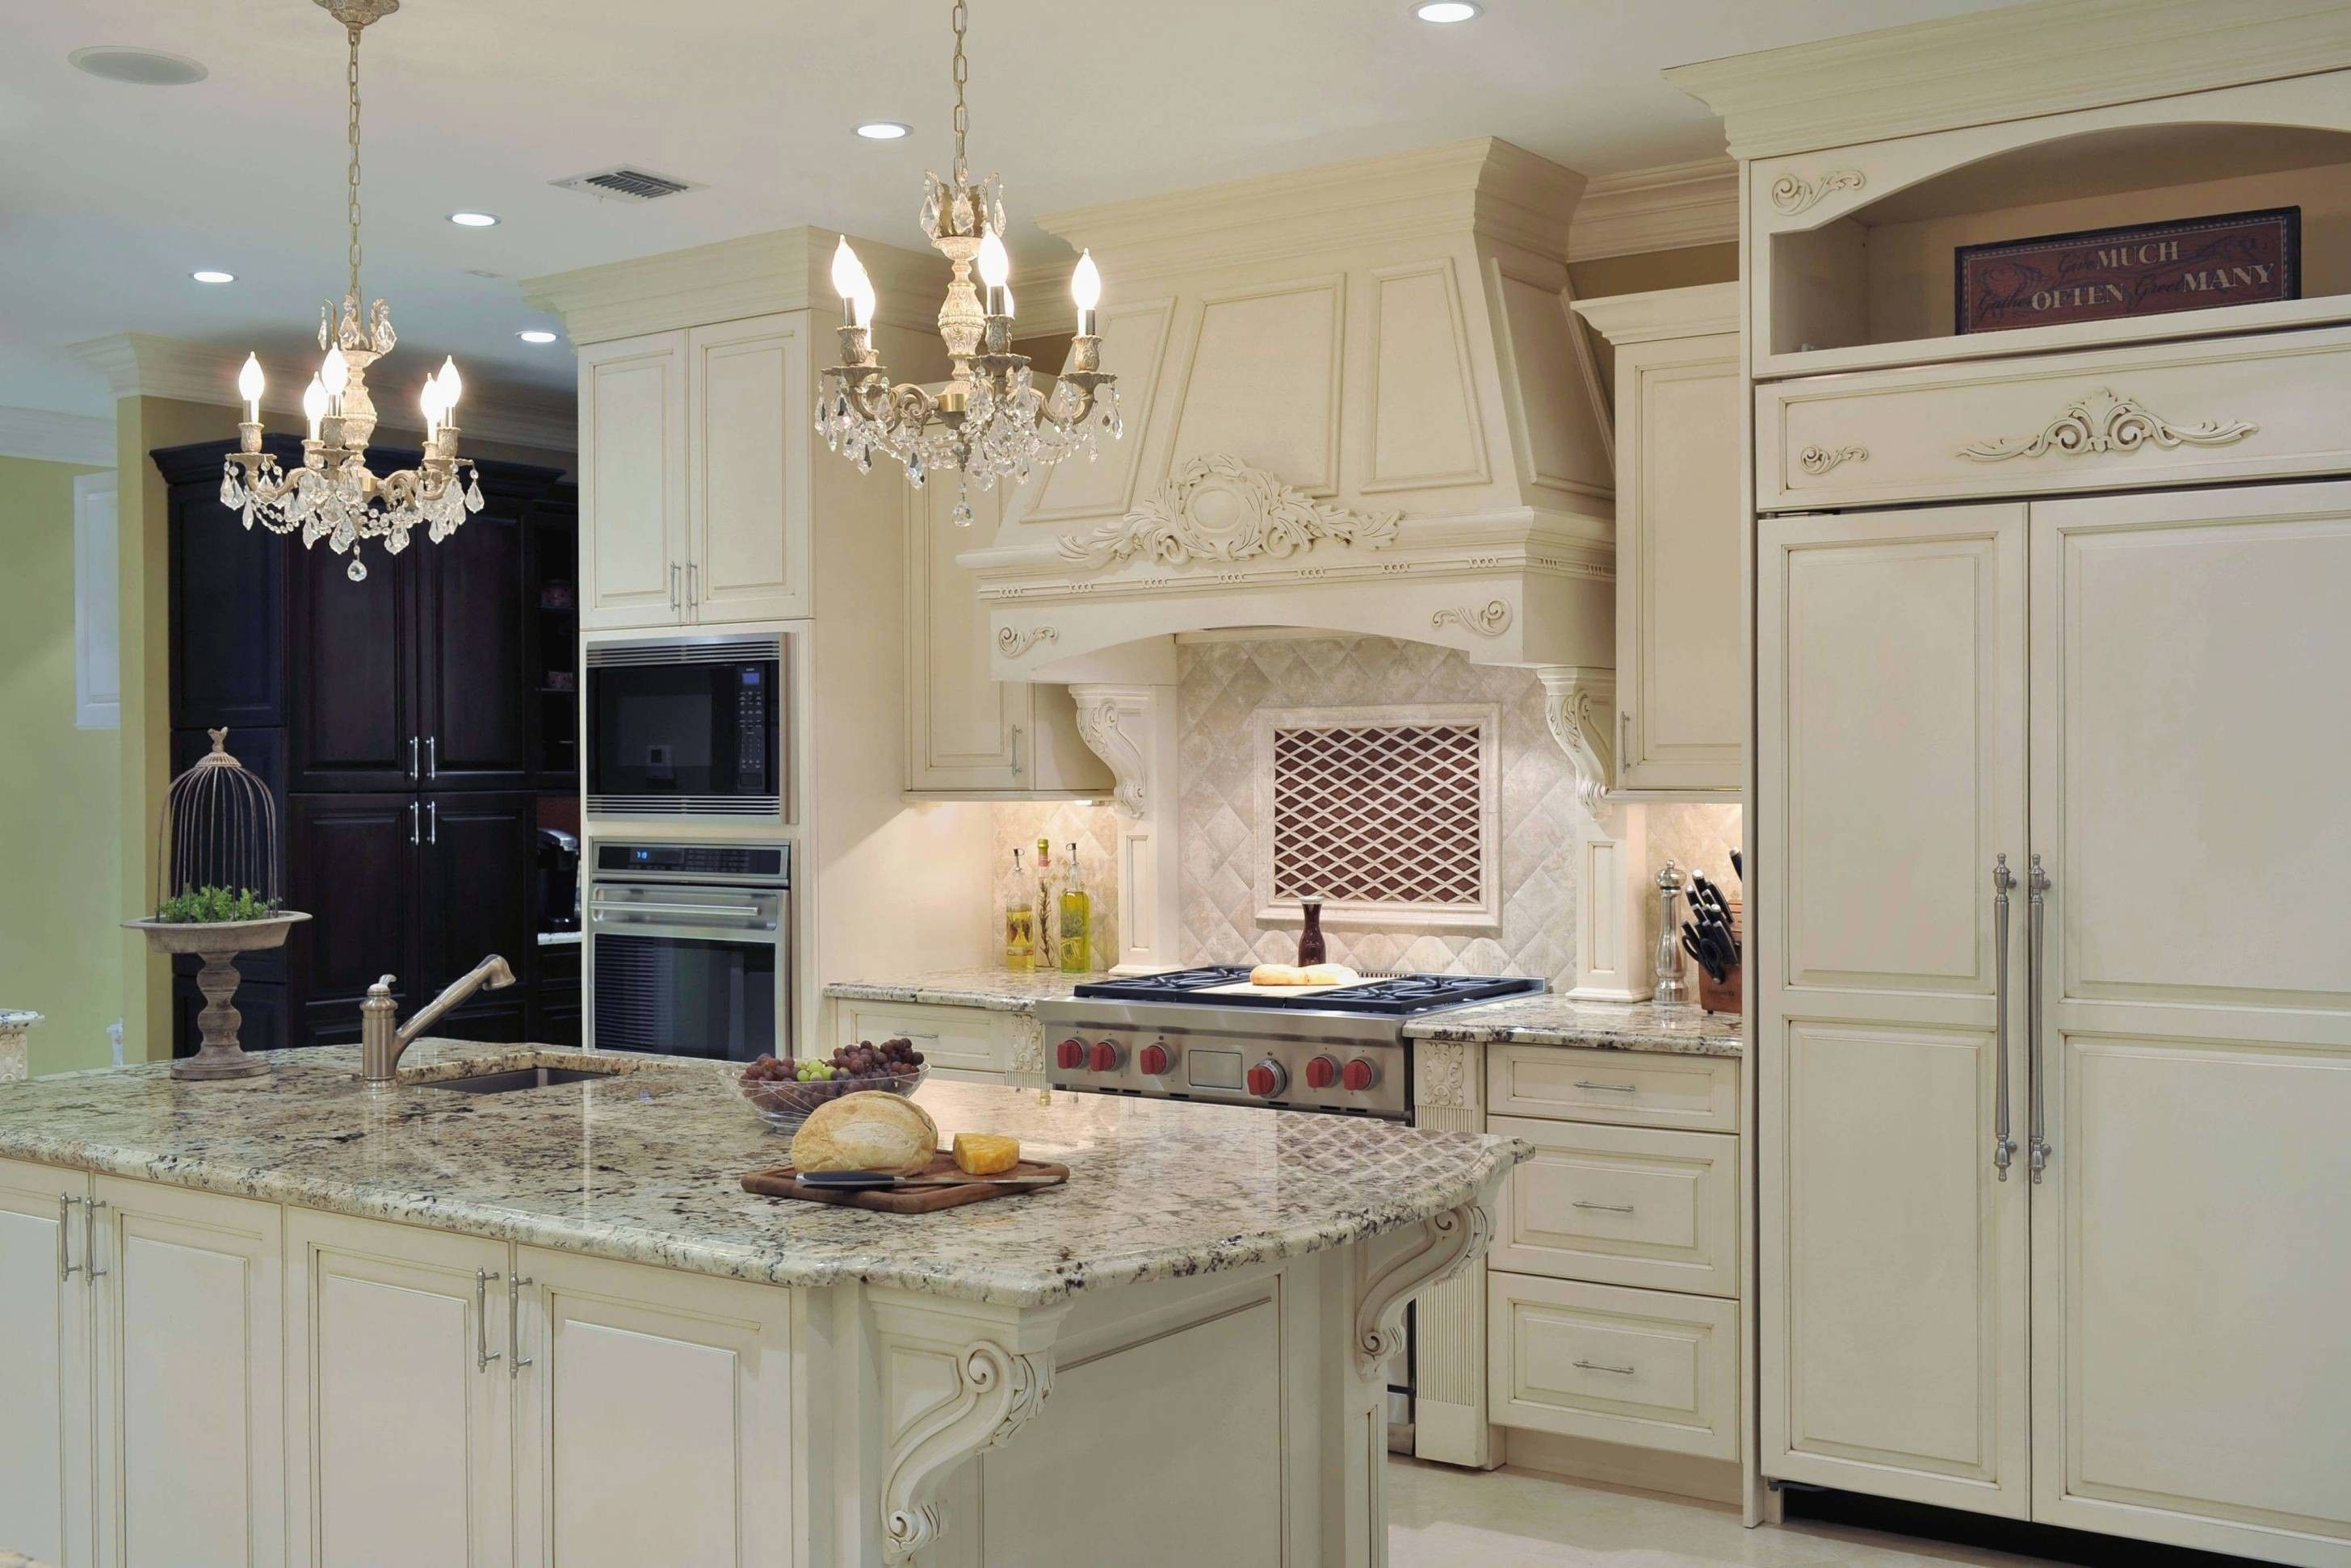 10 Best Cost New Kitchen Cabinets Home Depot With Images